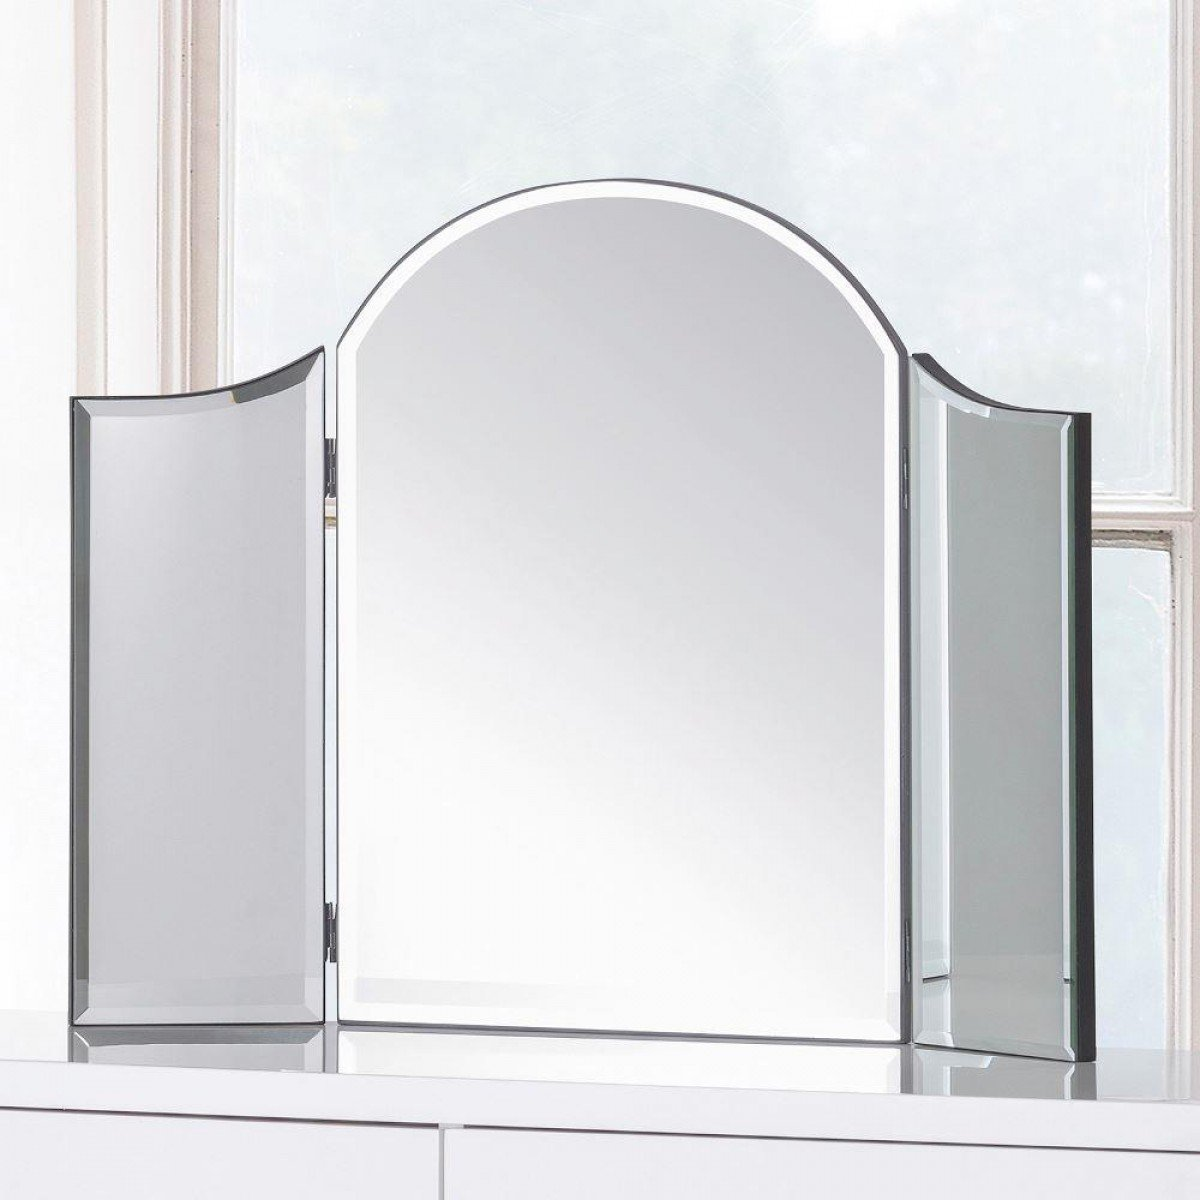 Canto Glass Curved Dressing Table Mirror - 65 cm x 50 cm